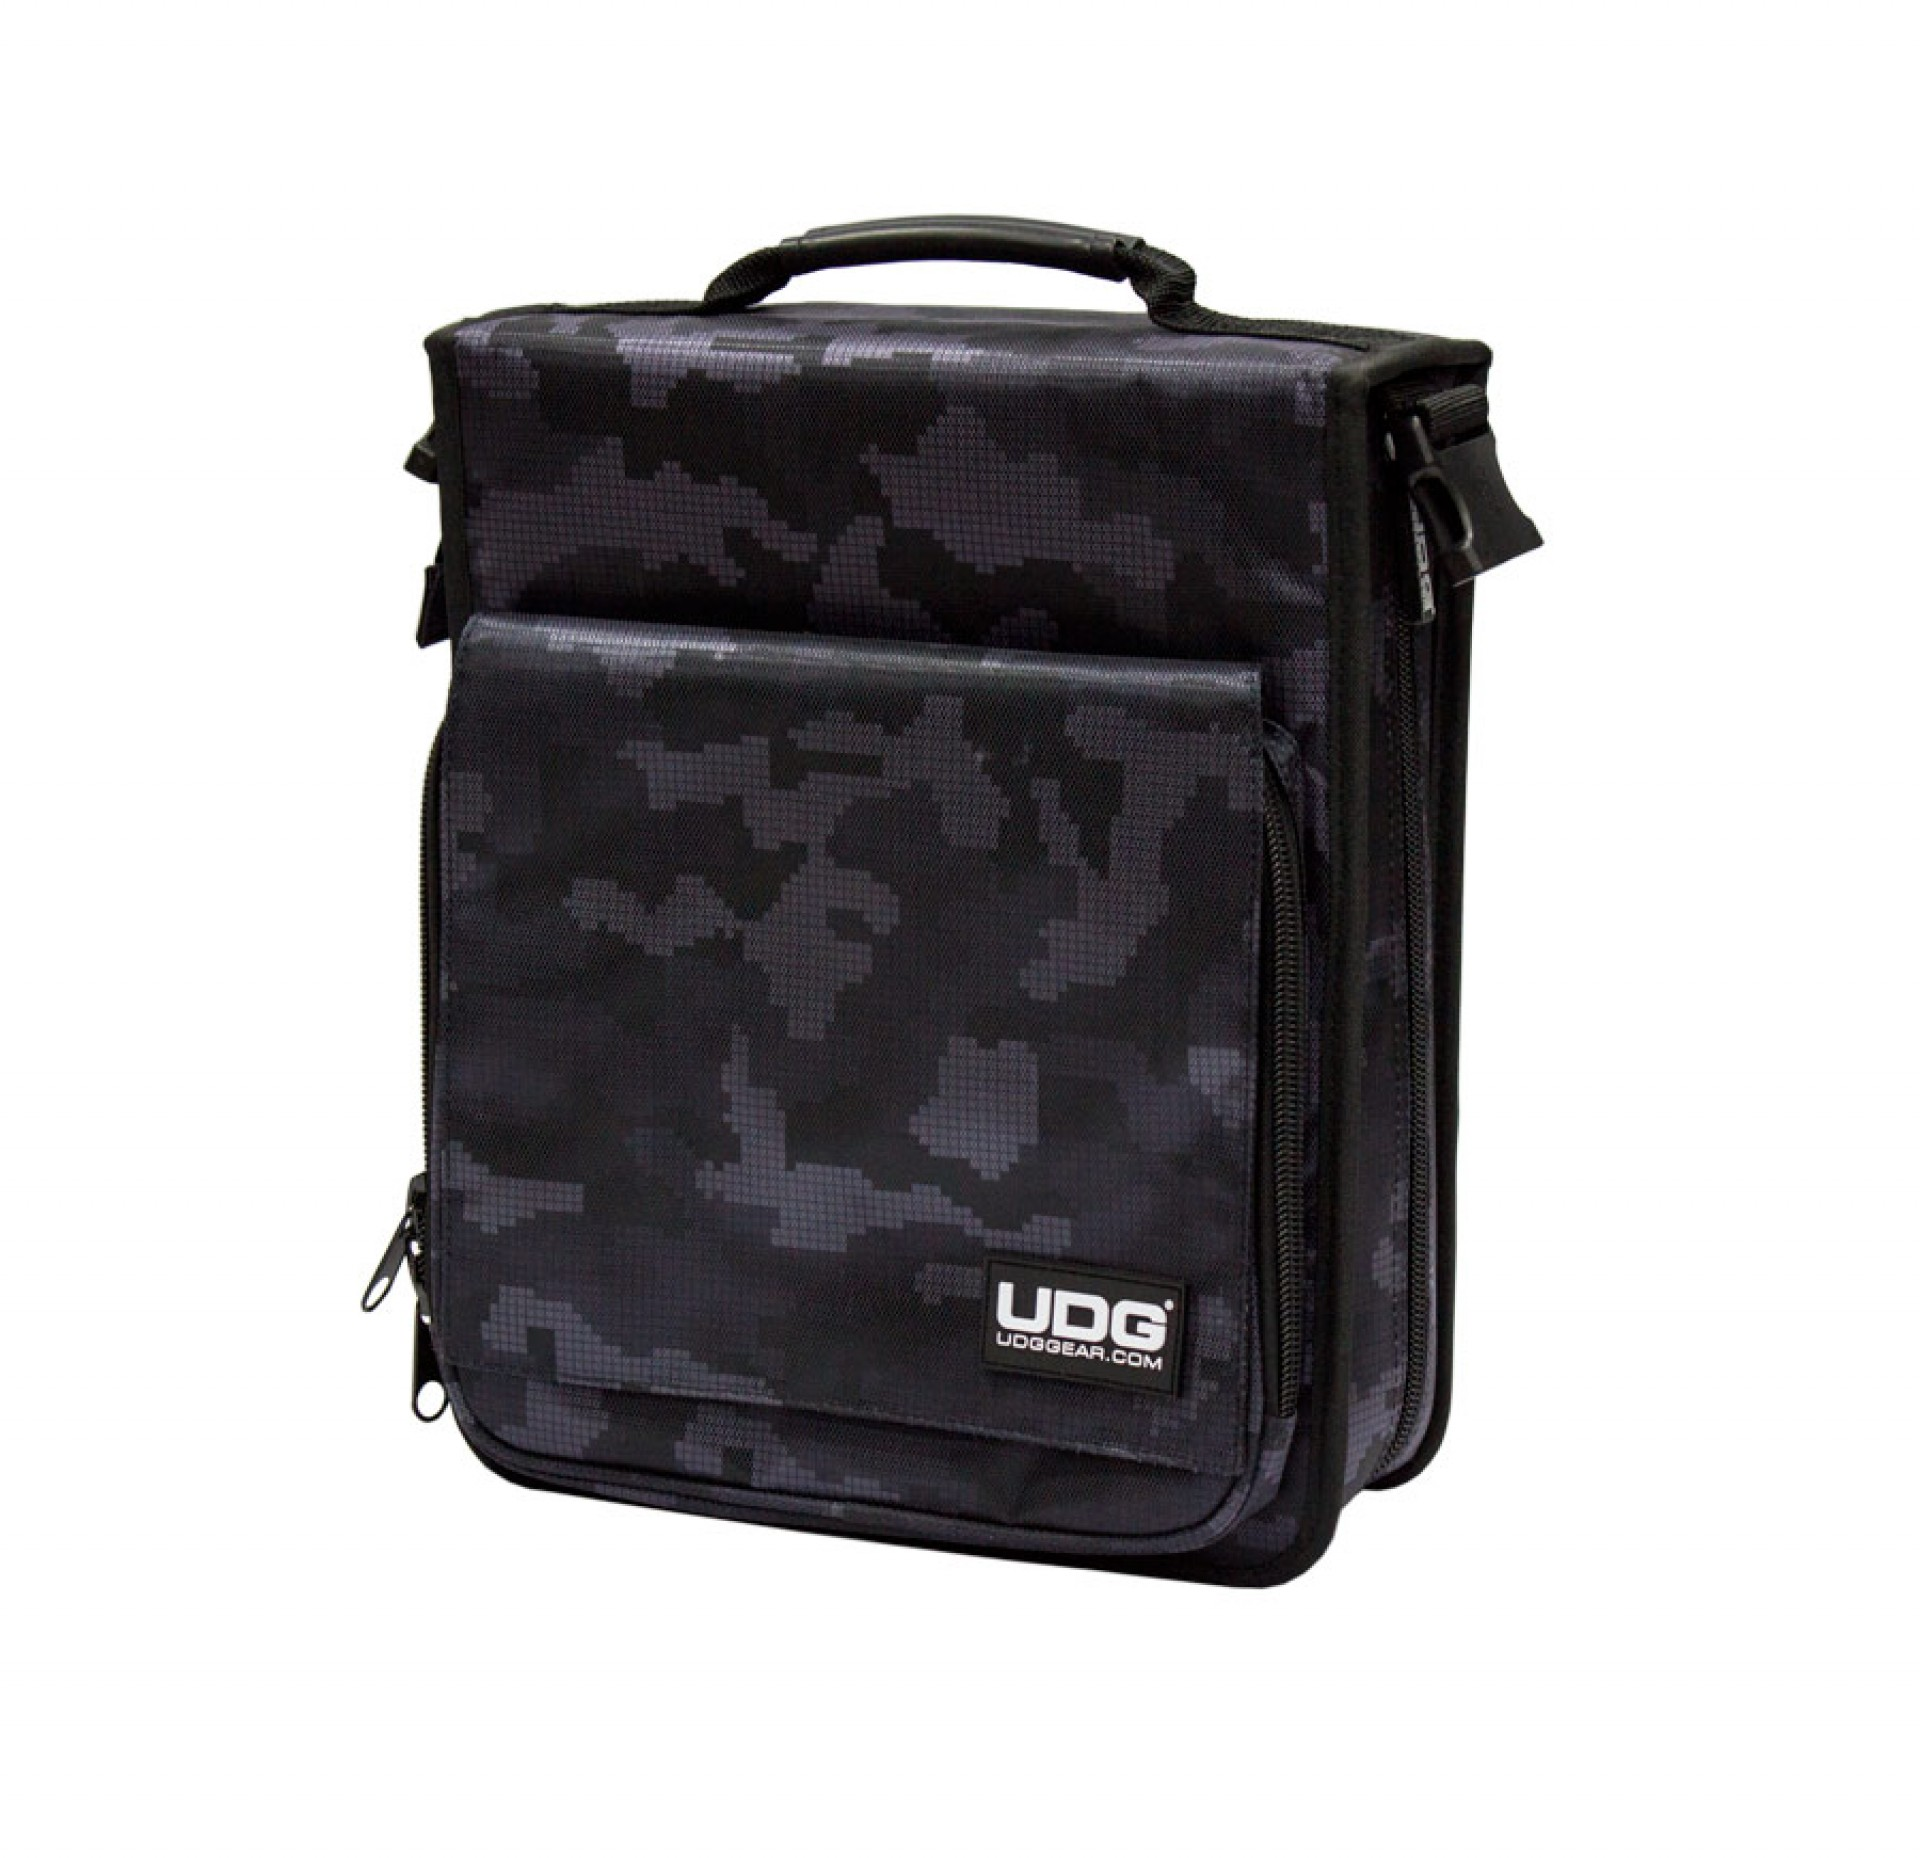 UDG CD SlingBag 258 Digital Camo Grey